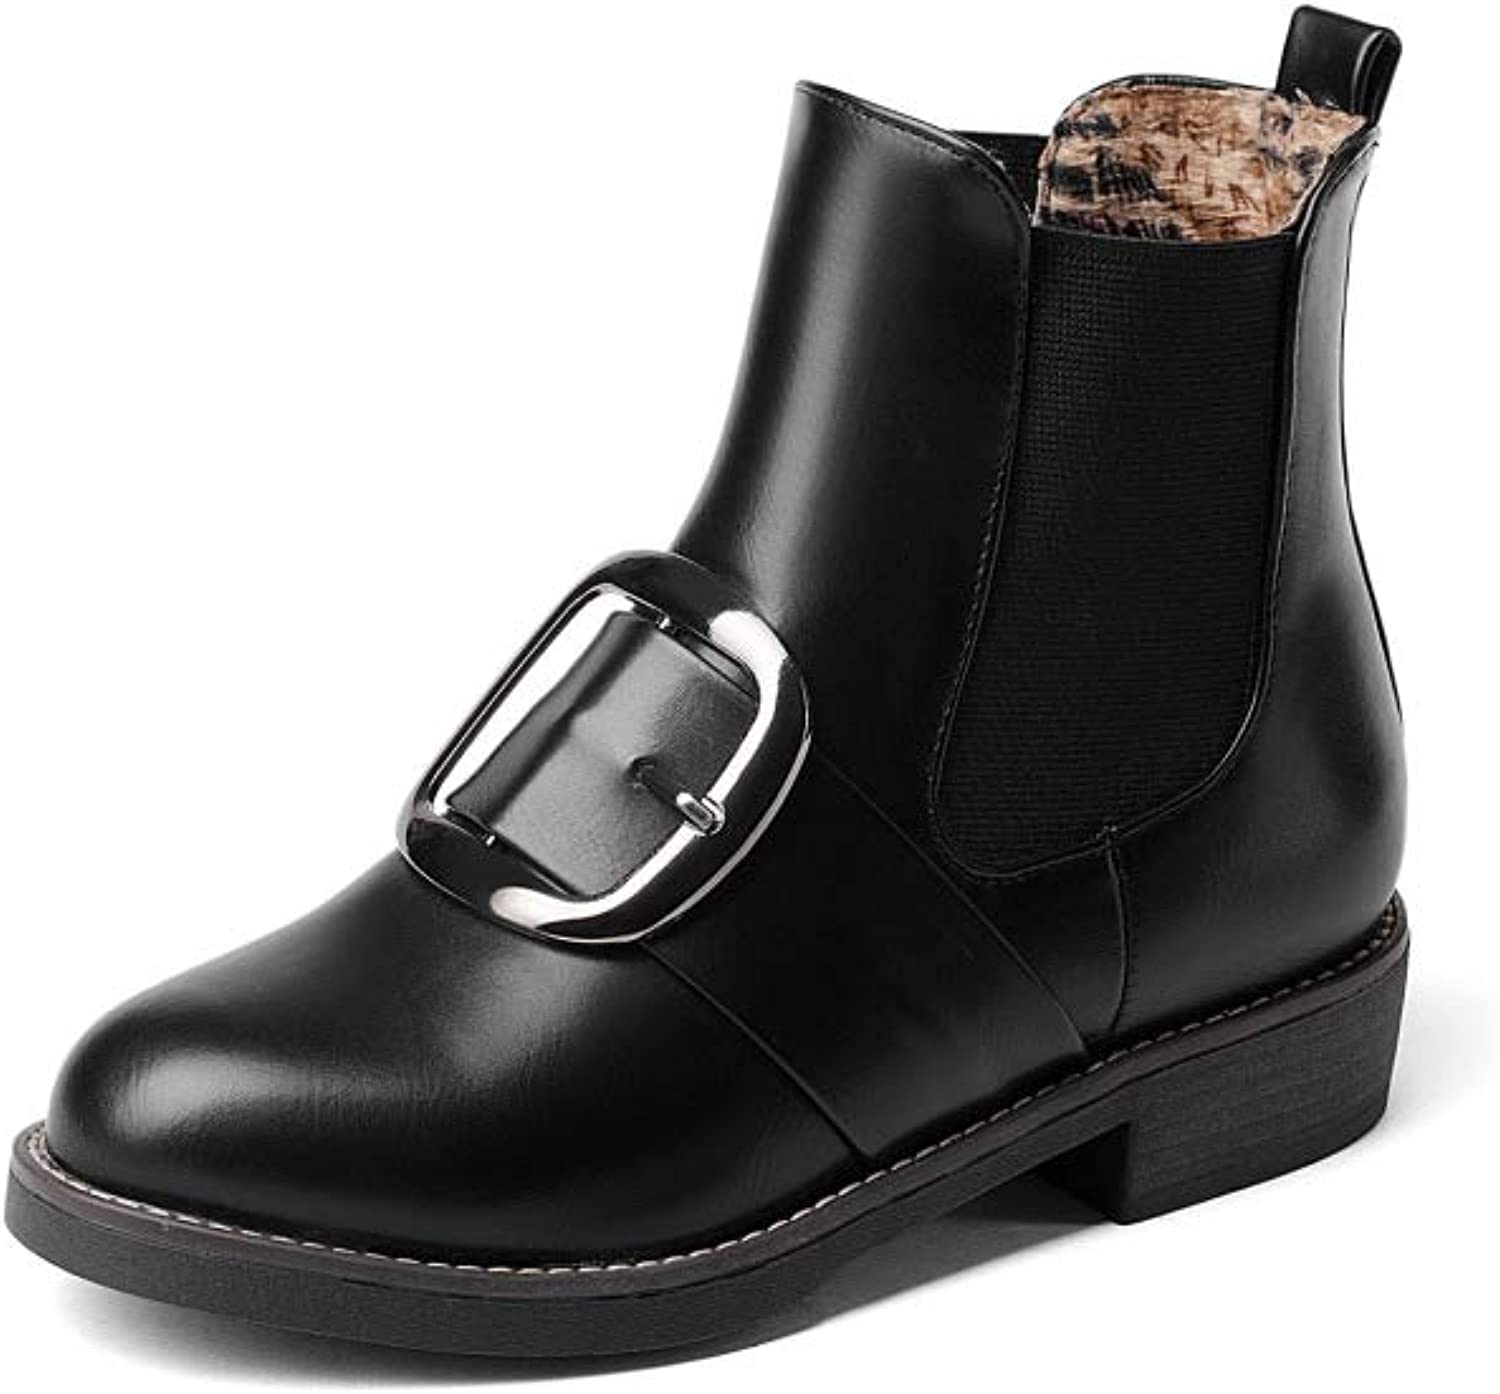 Winter Women Boots Wide Calf, Metallic Buckle Comfort Flat Ankle Snow Boots, Best Choice for Daily Wear EU35.5-41,Black-CN42